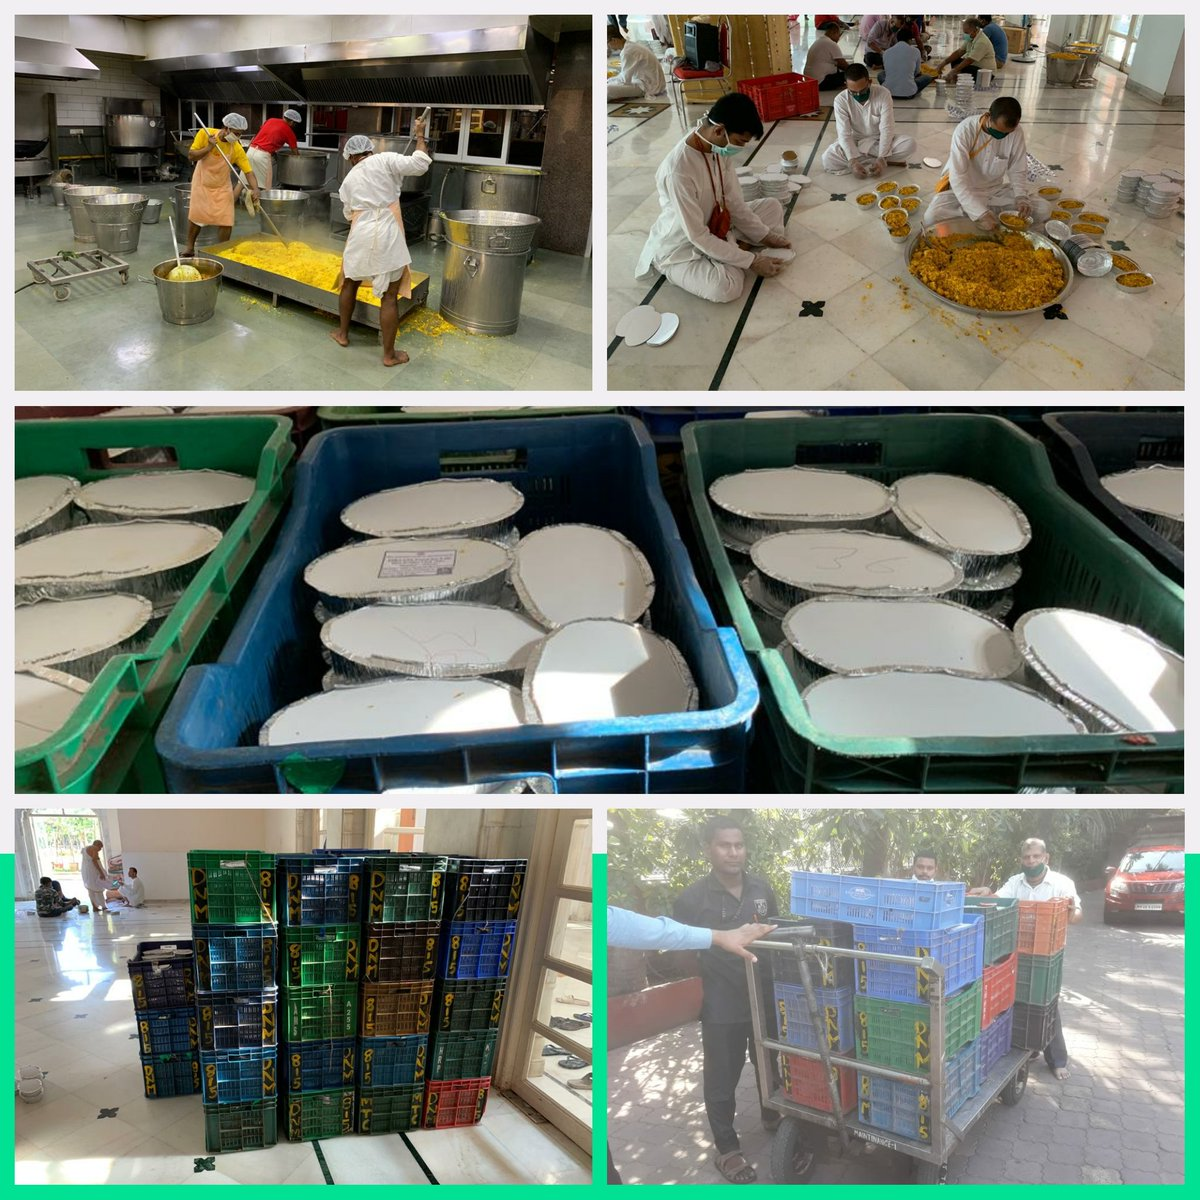 A glimpse of @RotiGharIndia's 12th day and @ISKCONJuhu in its 8th day of serving food selflessly to the needy. To both, I express my heartfelt thanks for keeping hope in humanity alive! @civildefensemah. #attitudeofgratitude  @priyankac19pic.twitter.com/Qb8lzlpT7U